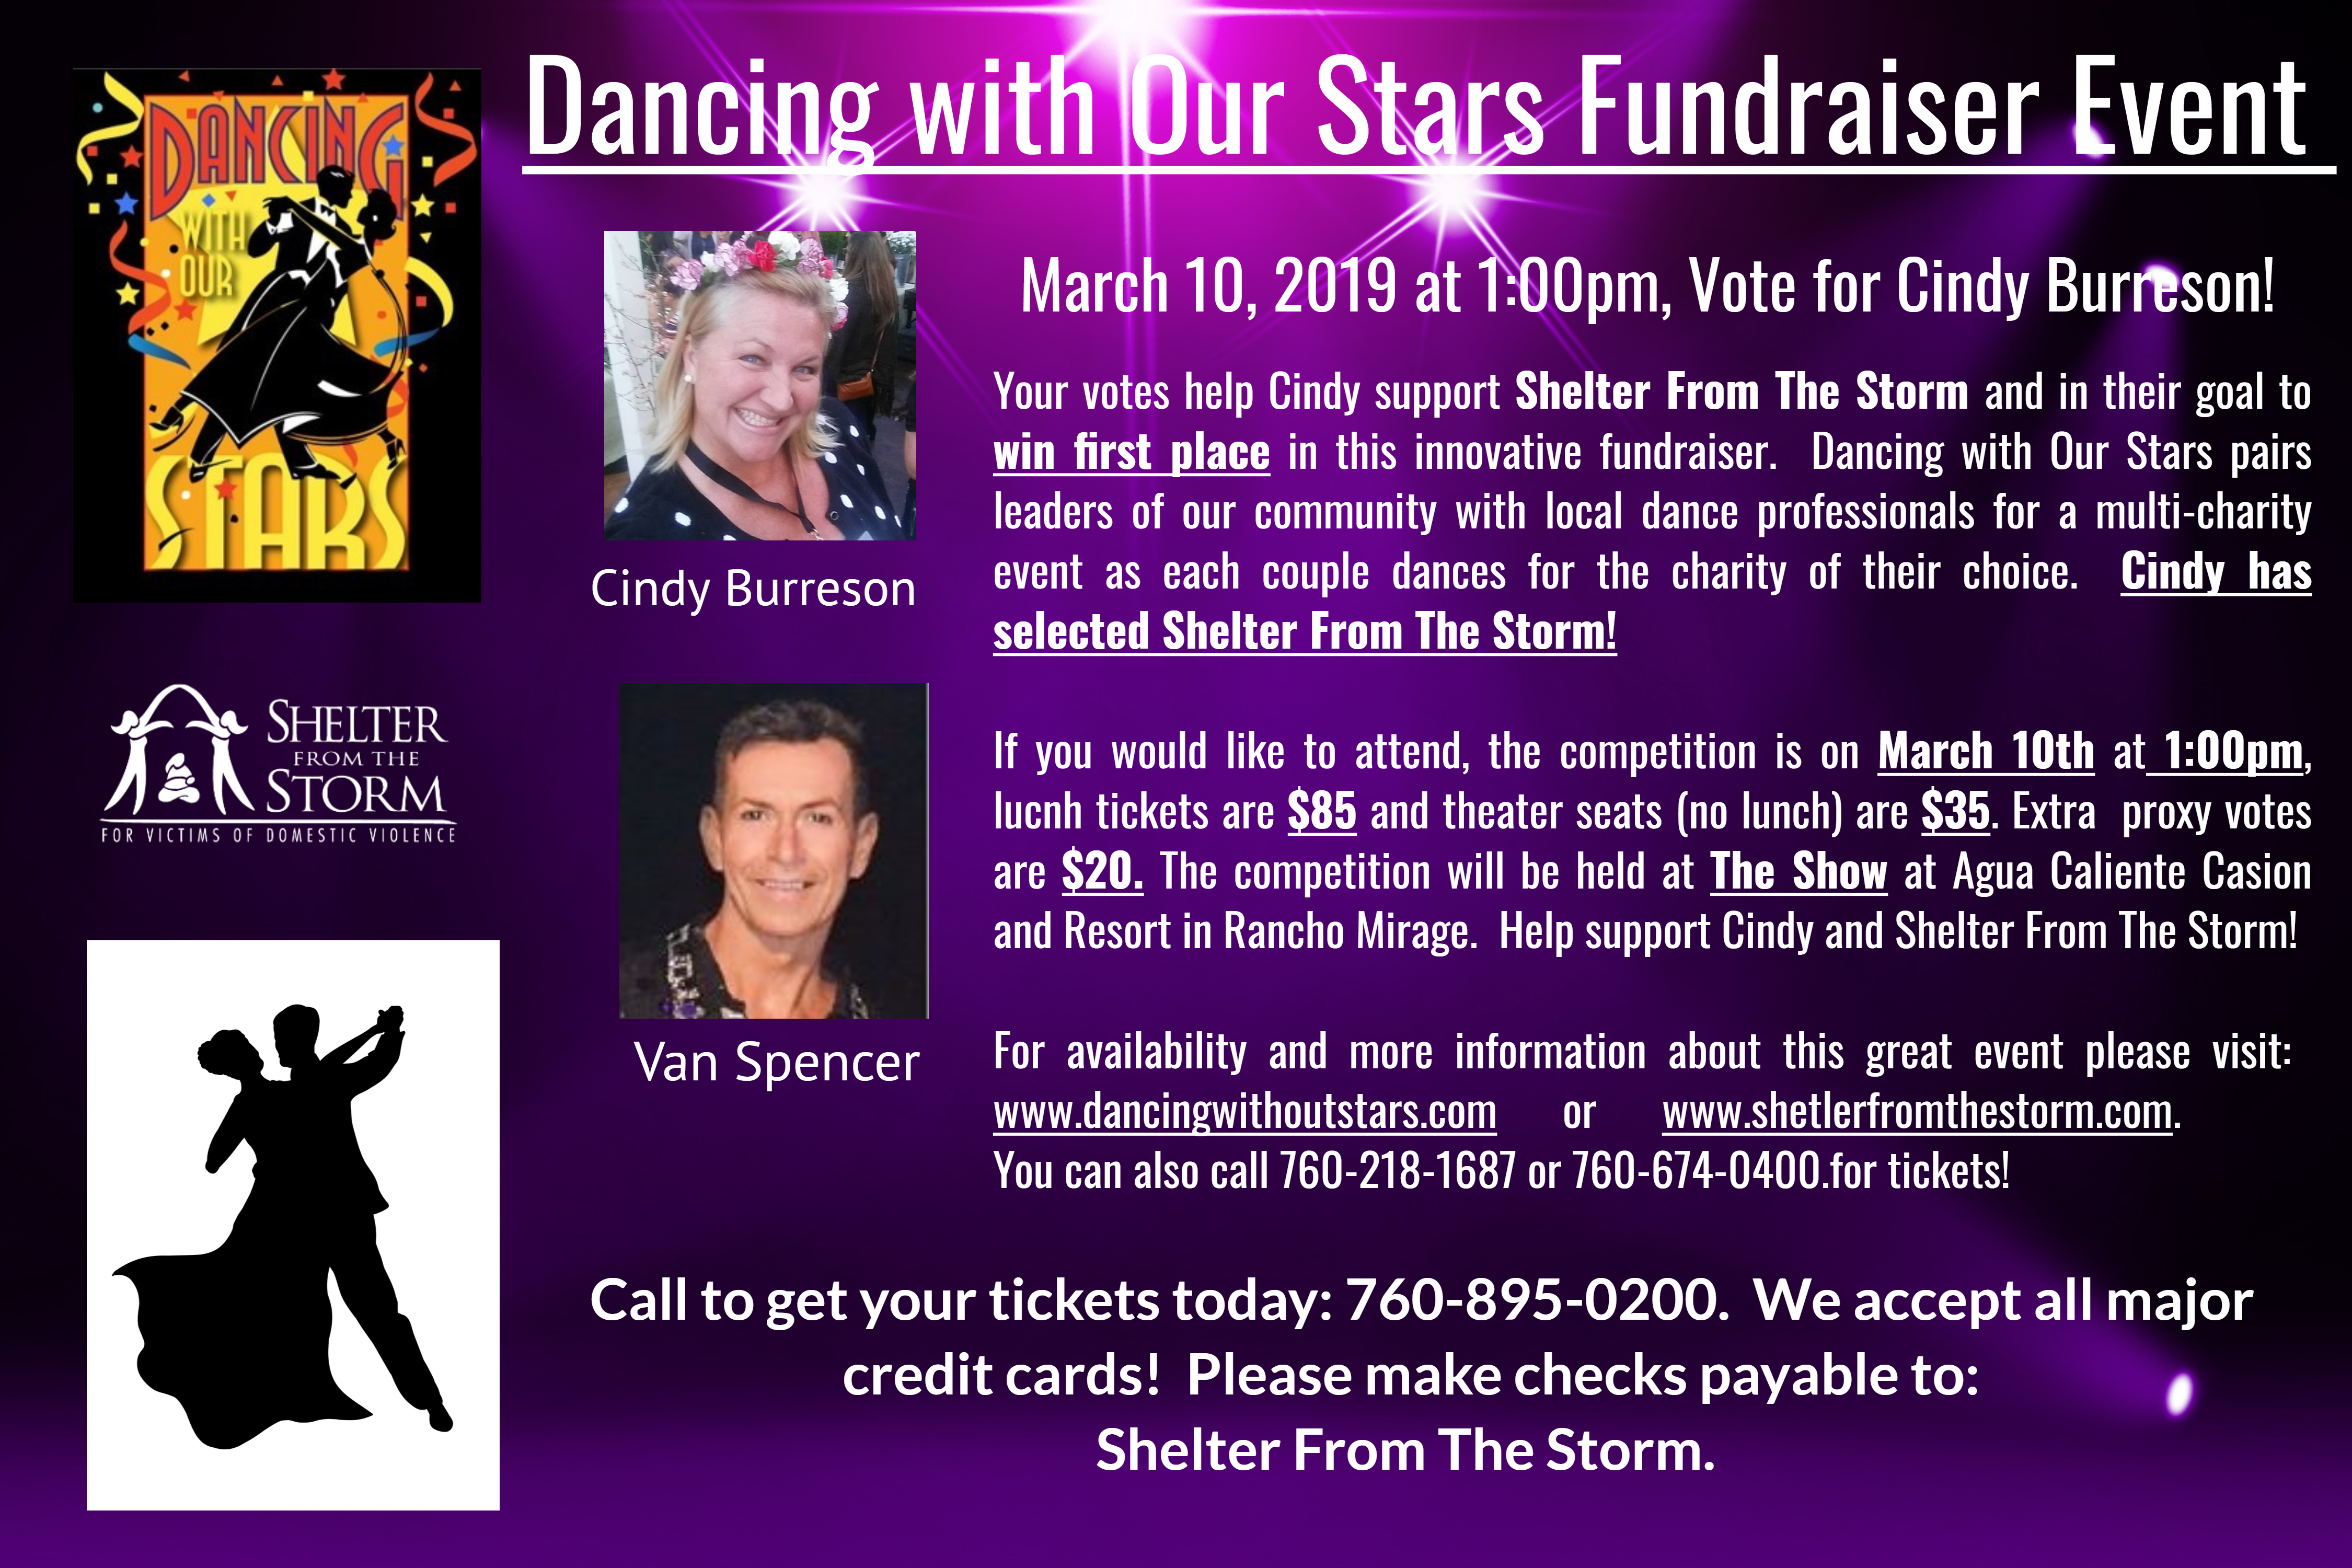 Dancing with Our Stars - Multi-charity fundraiser lunch event @ The Show at Agua Caliente Casino in Rancho Mirage, CA  | Rancho Mirage | California | United States